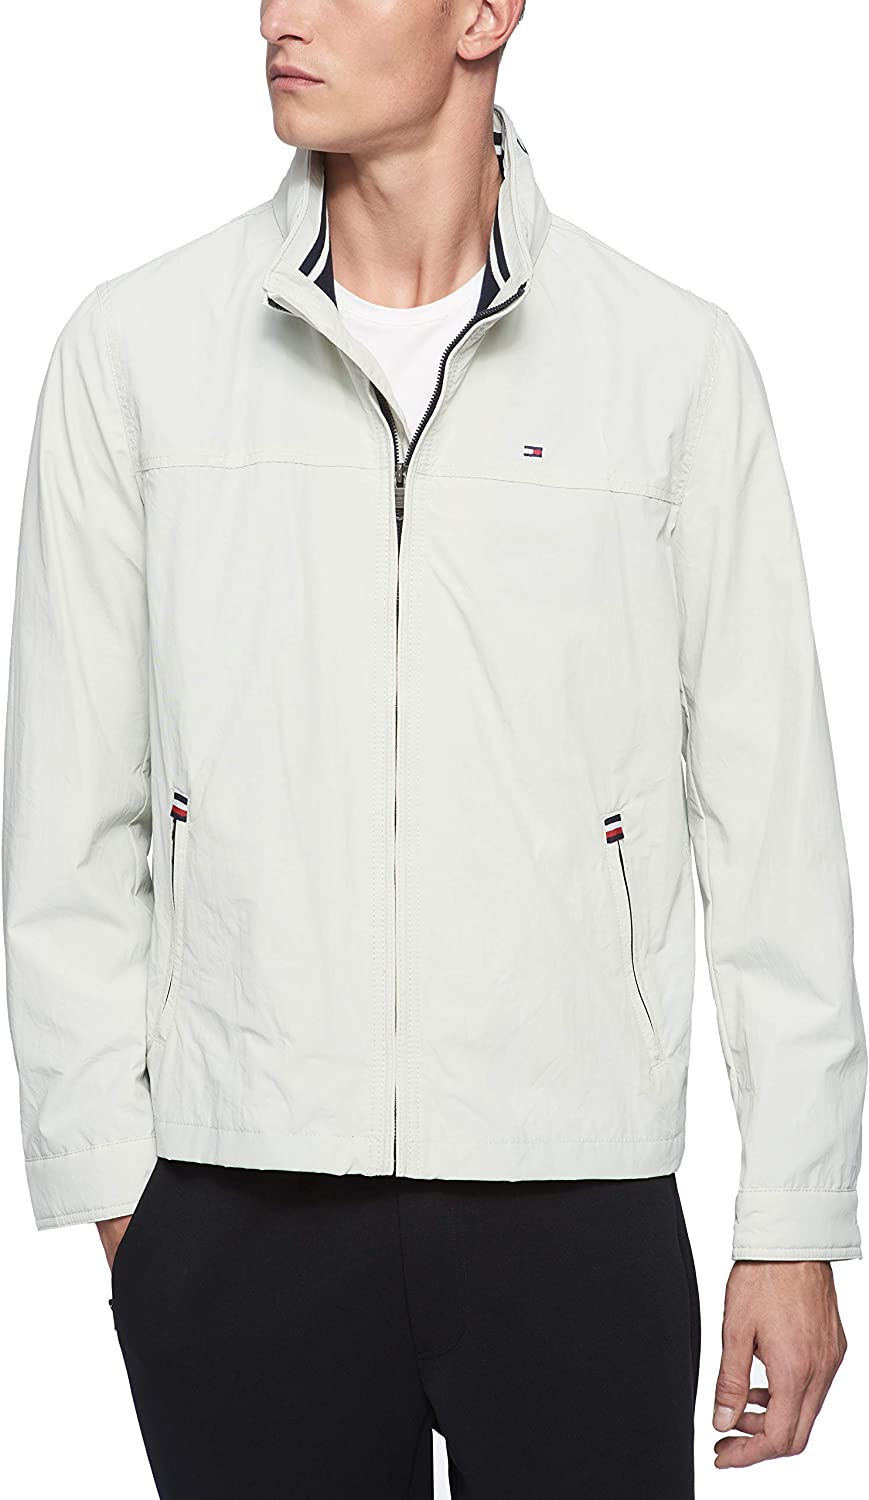 Tommy Hilfiger mens Stand Collar Lightweight Yachting Jacket